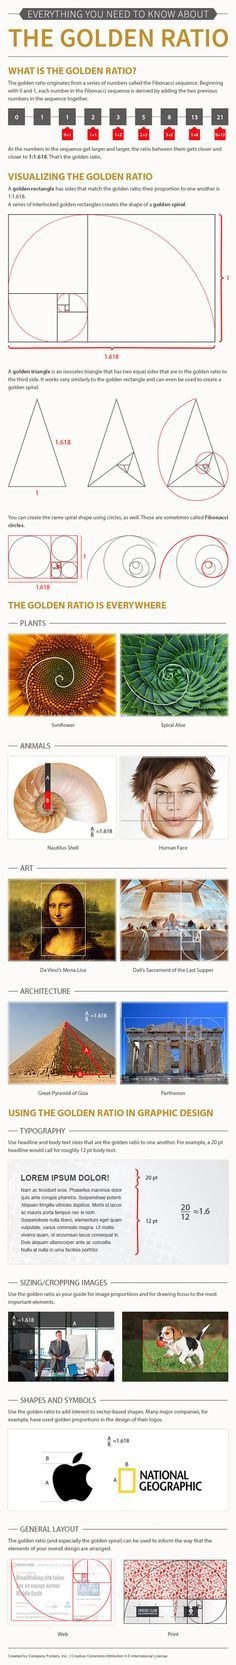 The golden ratio should not need any introduction to those who have studied math and design in school. Some designers apply these mathematical concepts to come up with more visually appealing works. This infographic from companyfolders.com covers a few golden ratio facts: